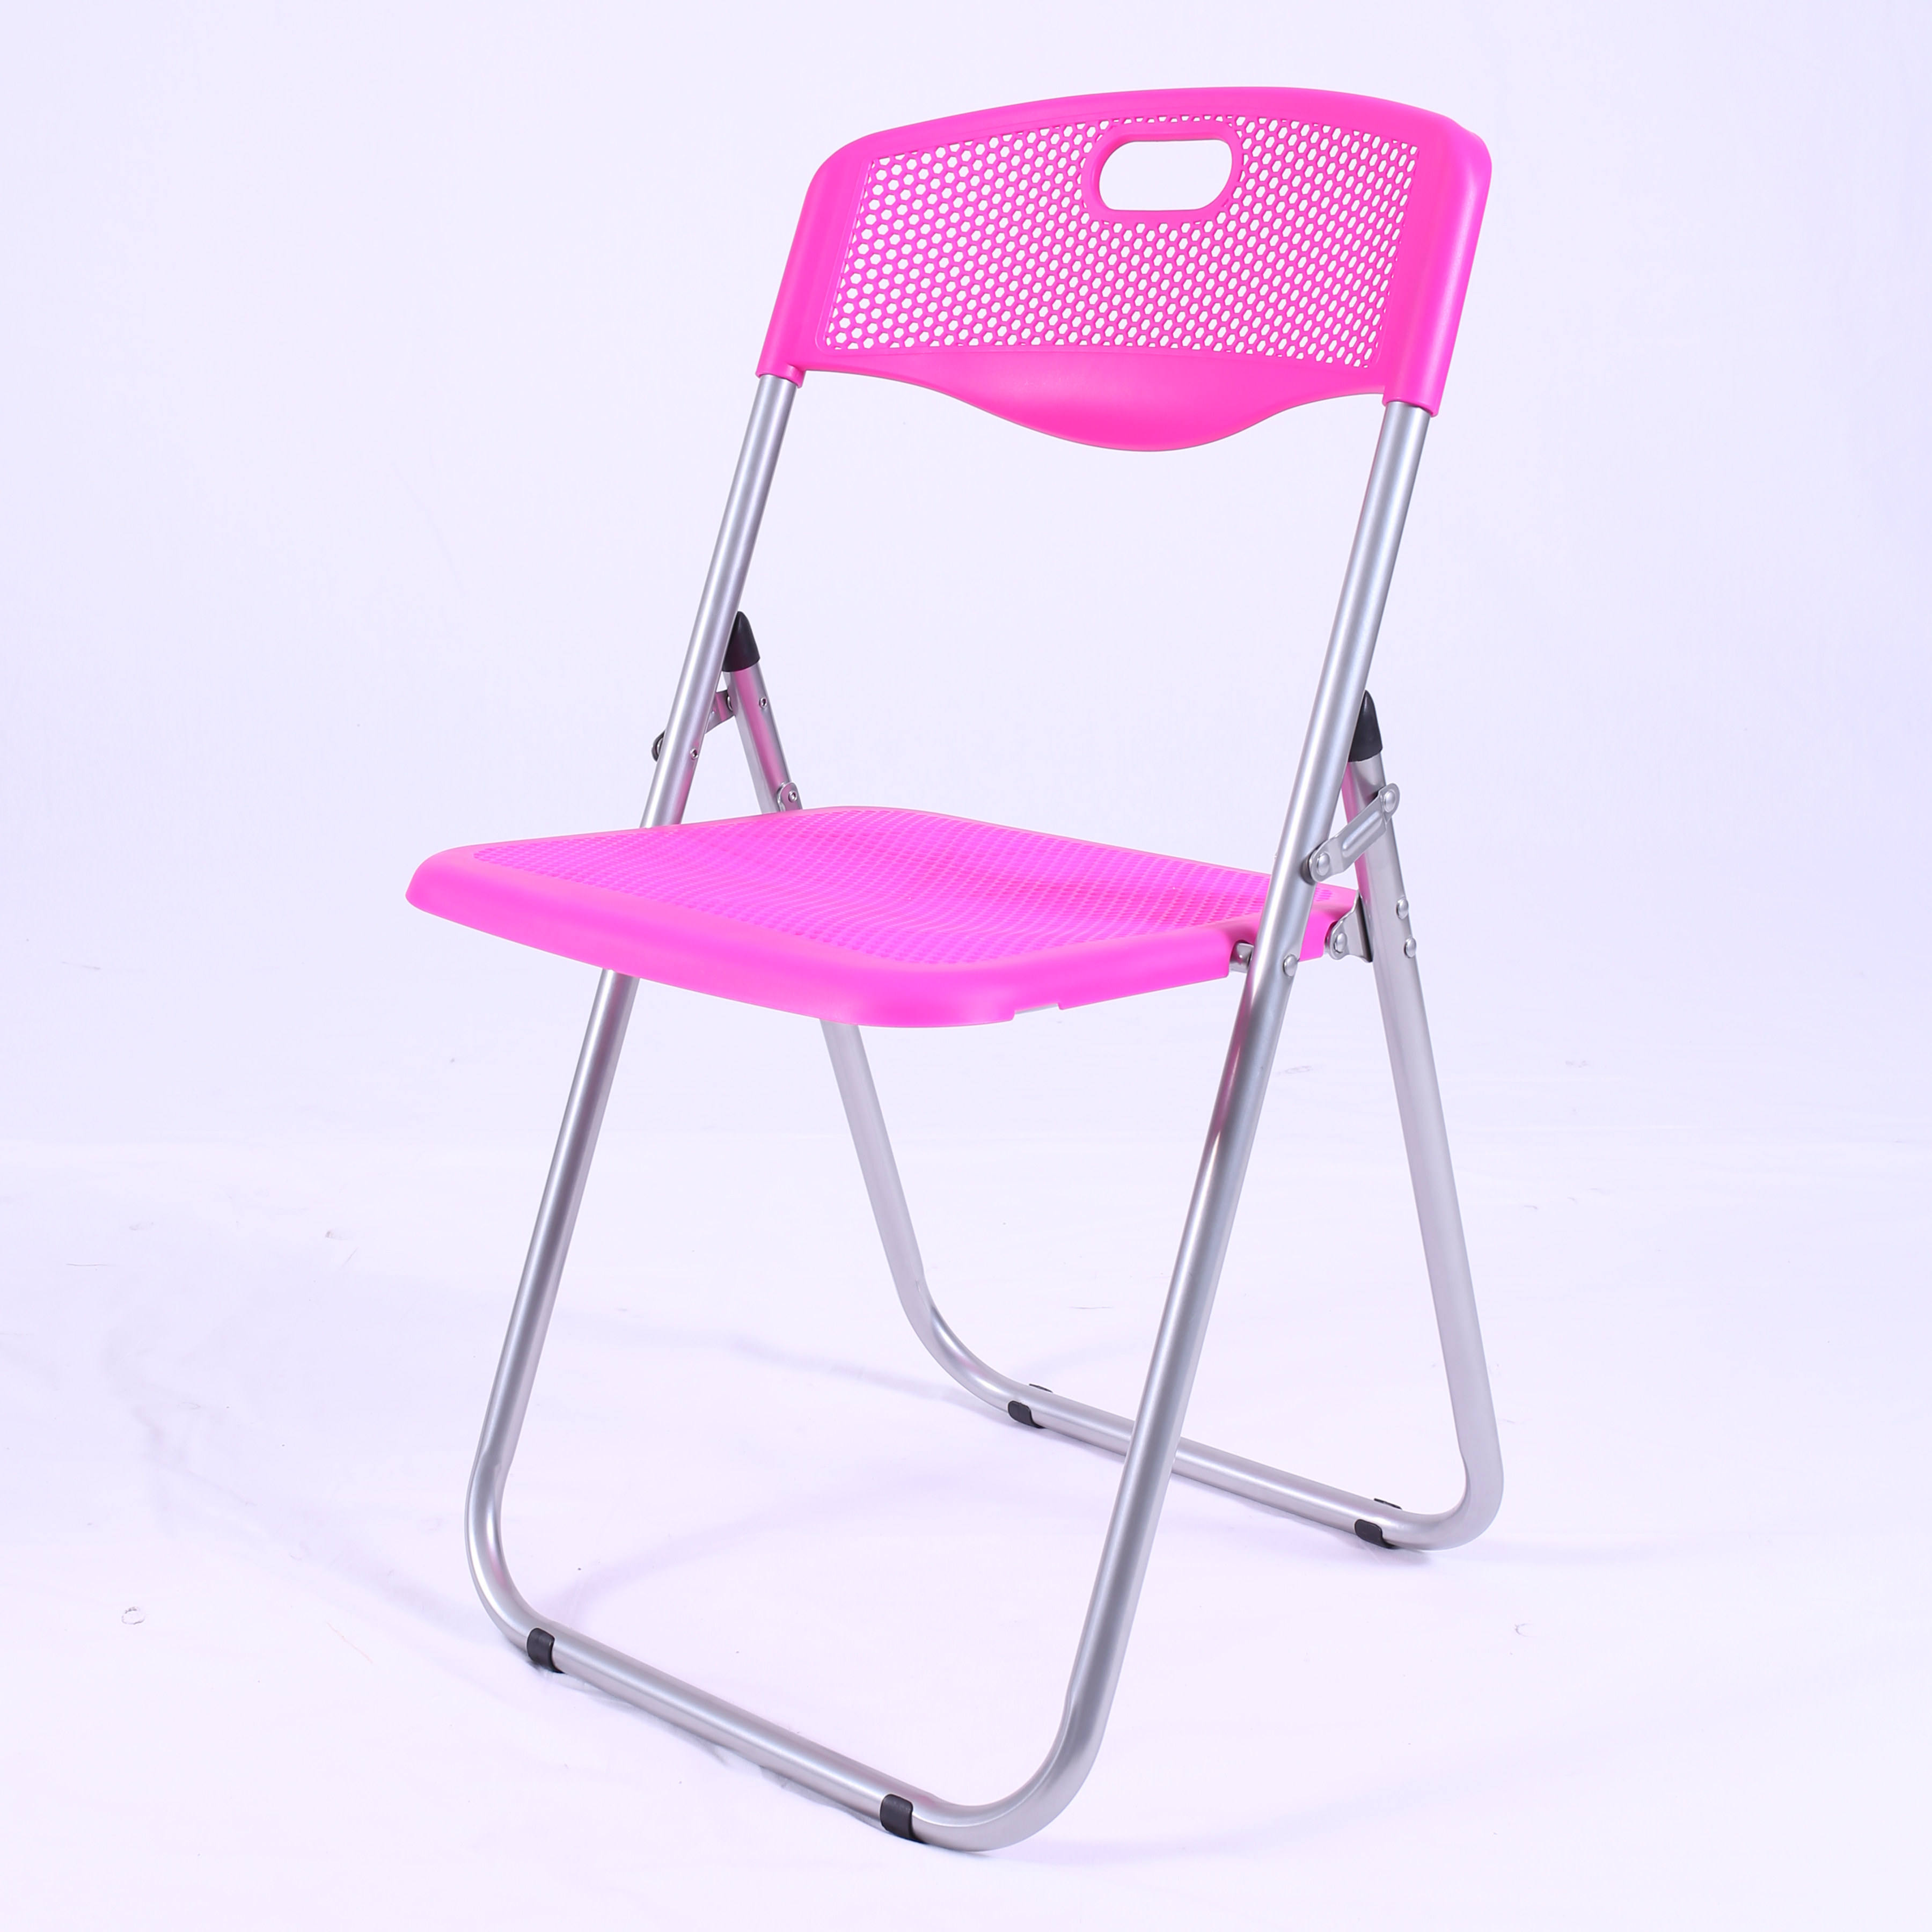 Hot Sell High Quality Cheap Outdoor Furniture PP Seat Metal Legs foldable Chair